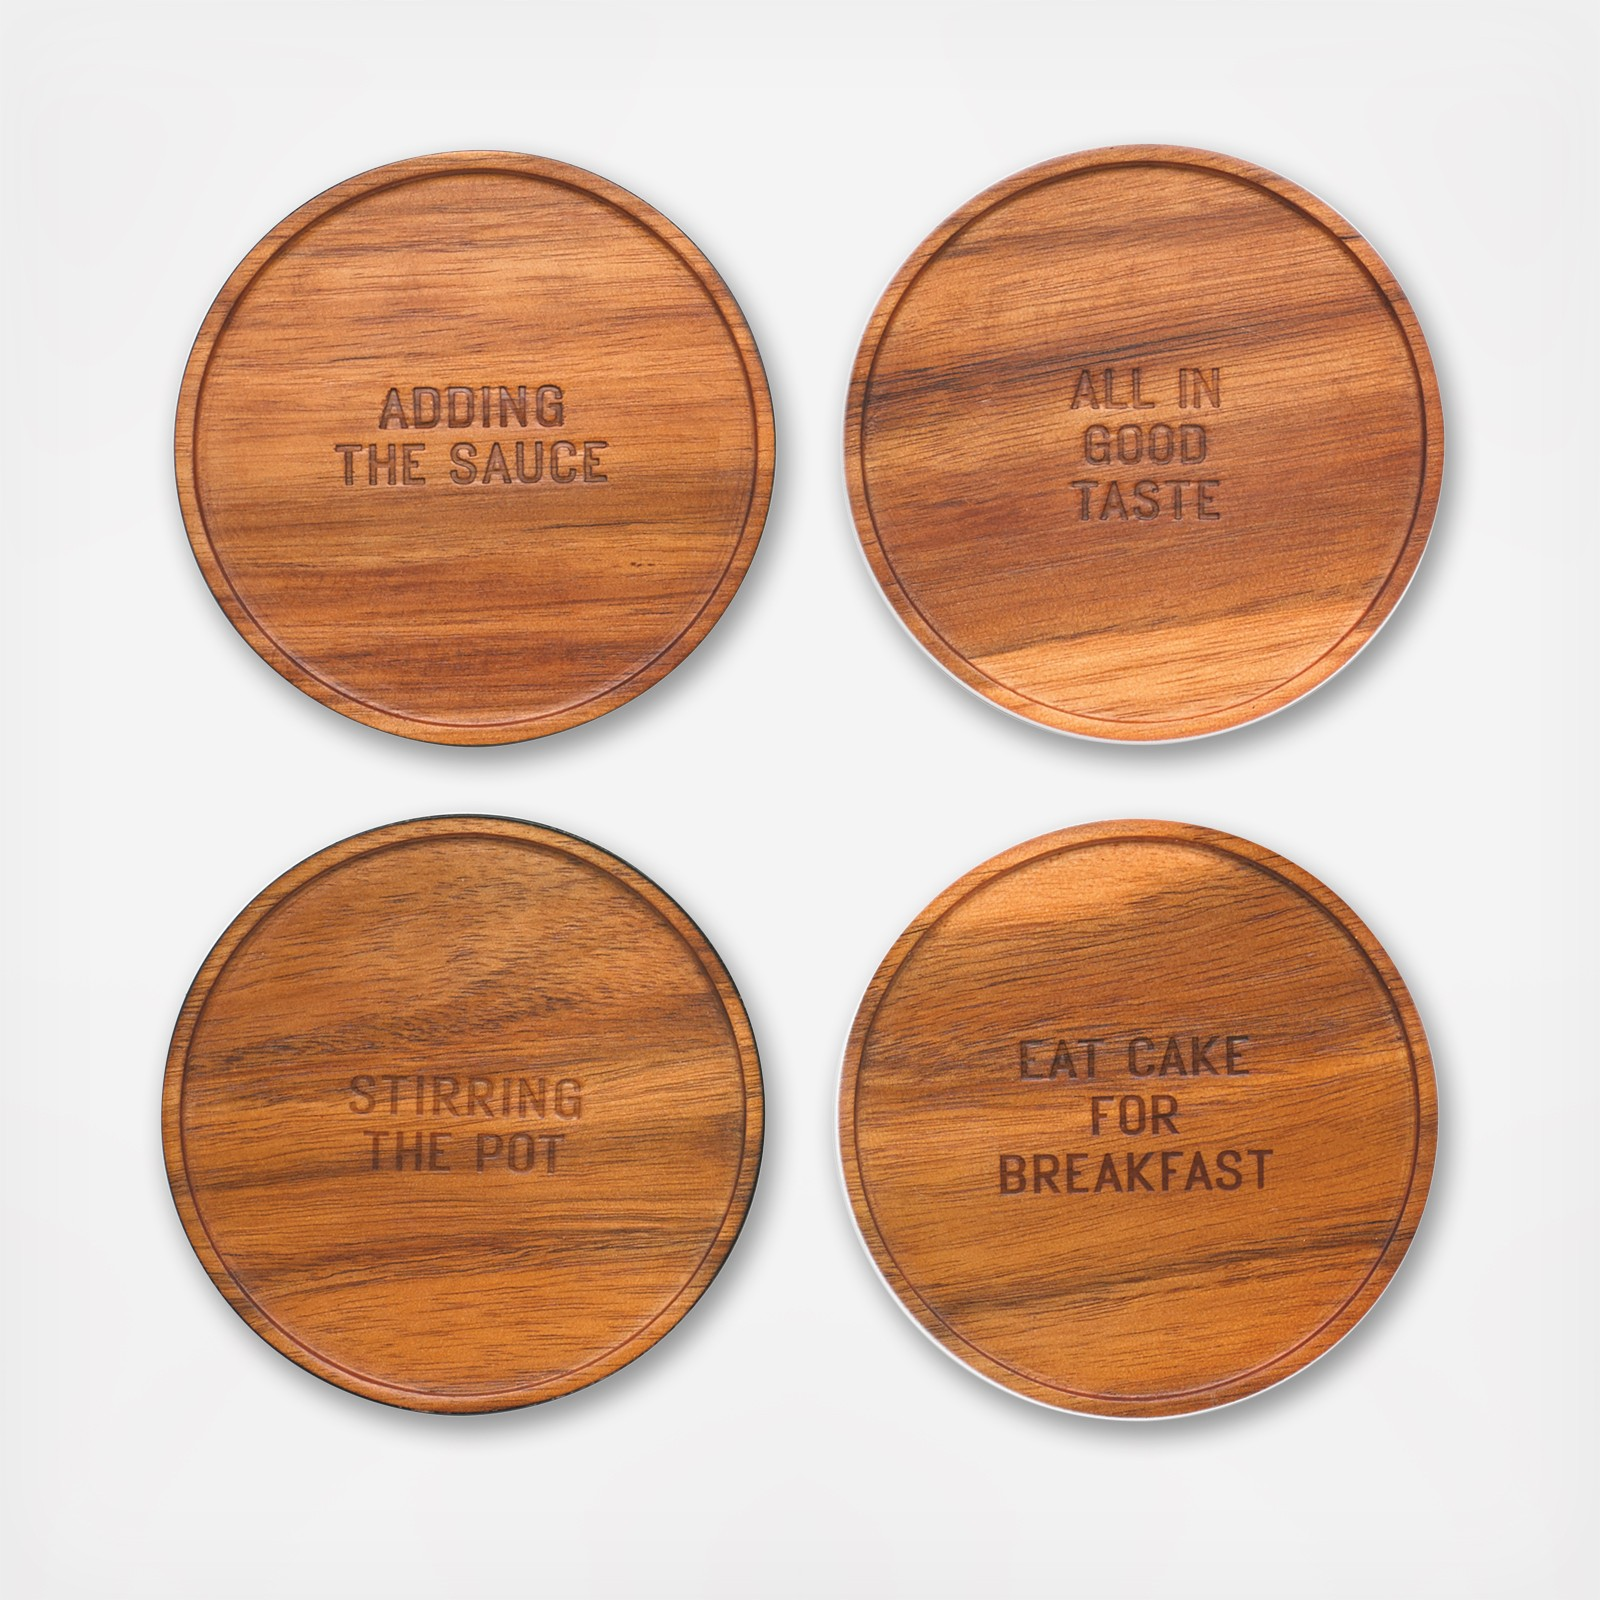 All In Good Taste Wood Coaster Set Of 4 By Kate Spade New York Zola